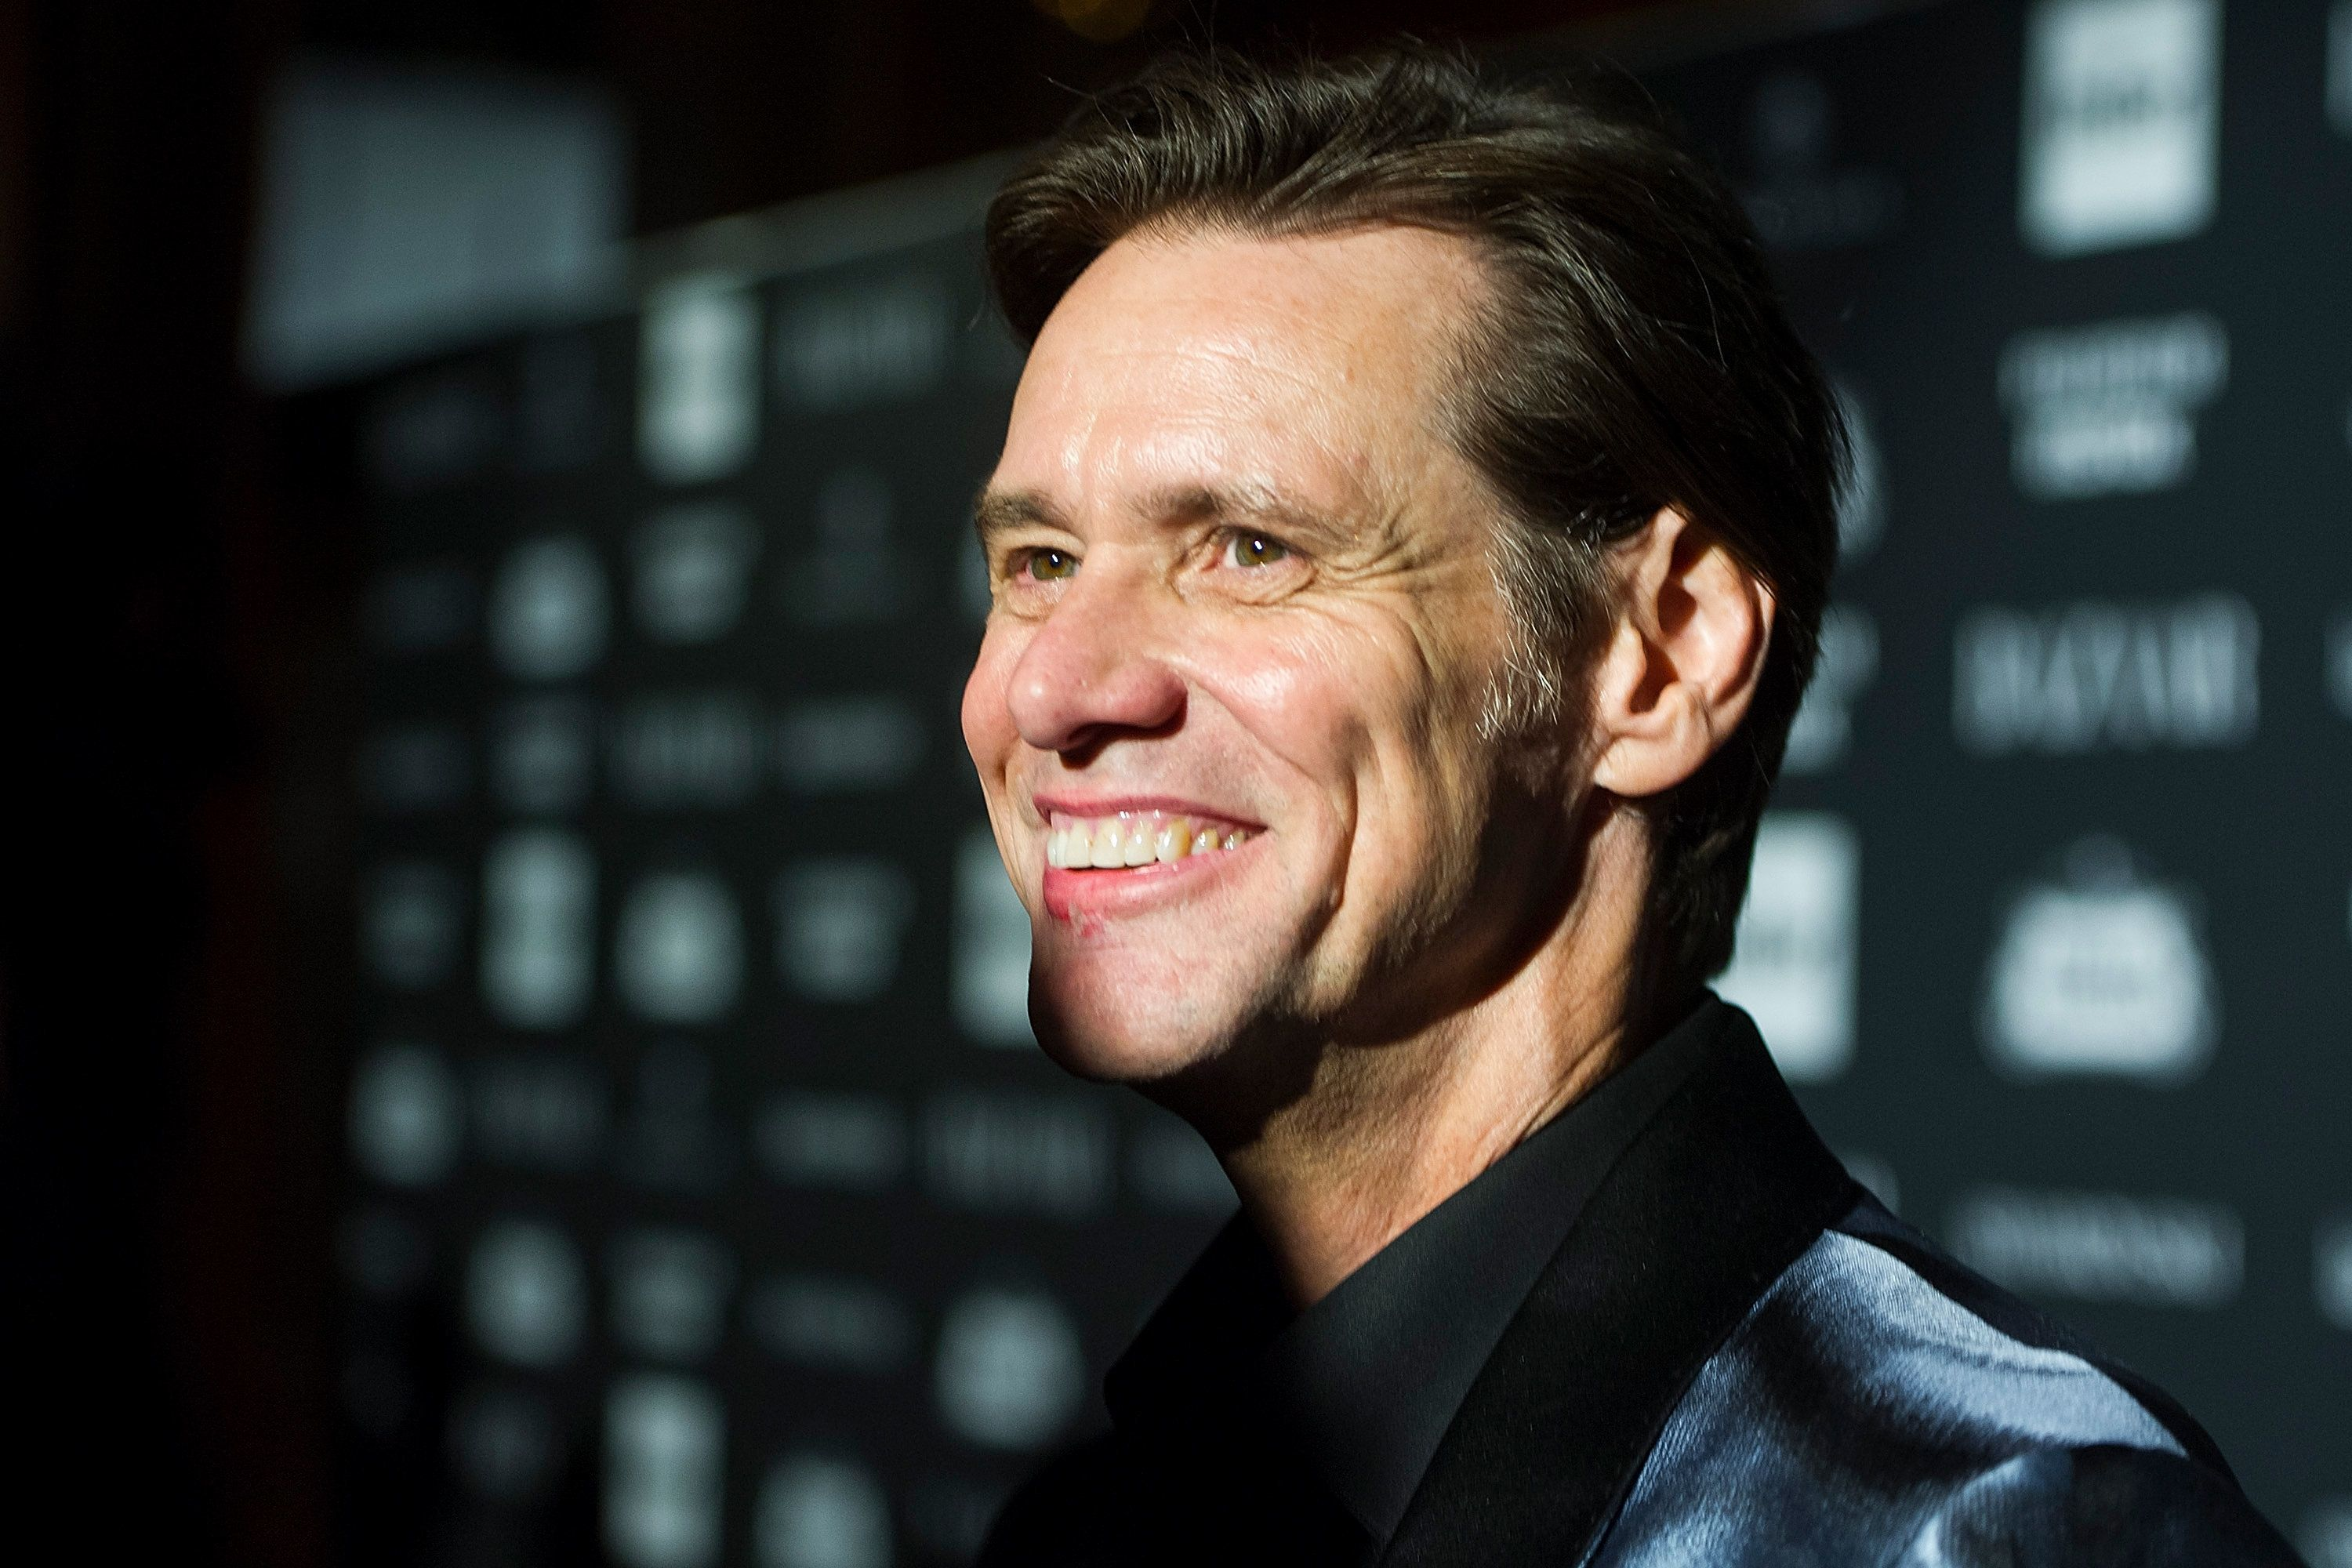 NEW YORK, NY - SEPTEMBER 08:  Actor Jim Carrey attends 2017 Harper's Bazaar Icons at The Plaza Hotel on September 8, 2017 in New York City.  (Photo by Michael Stewart/Getty Images)